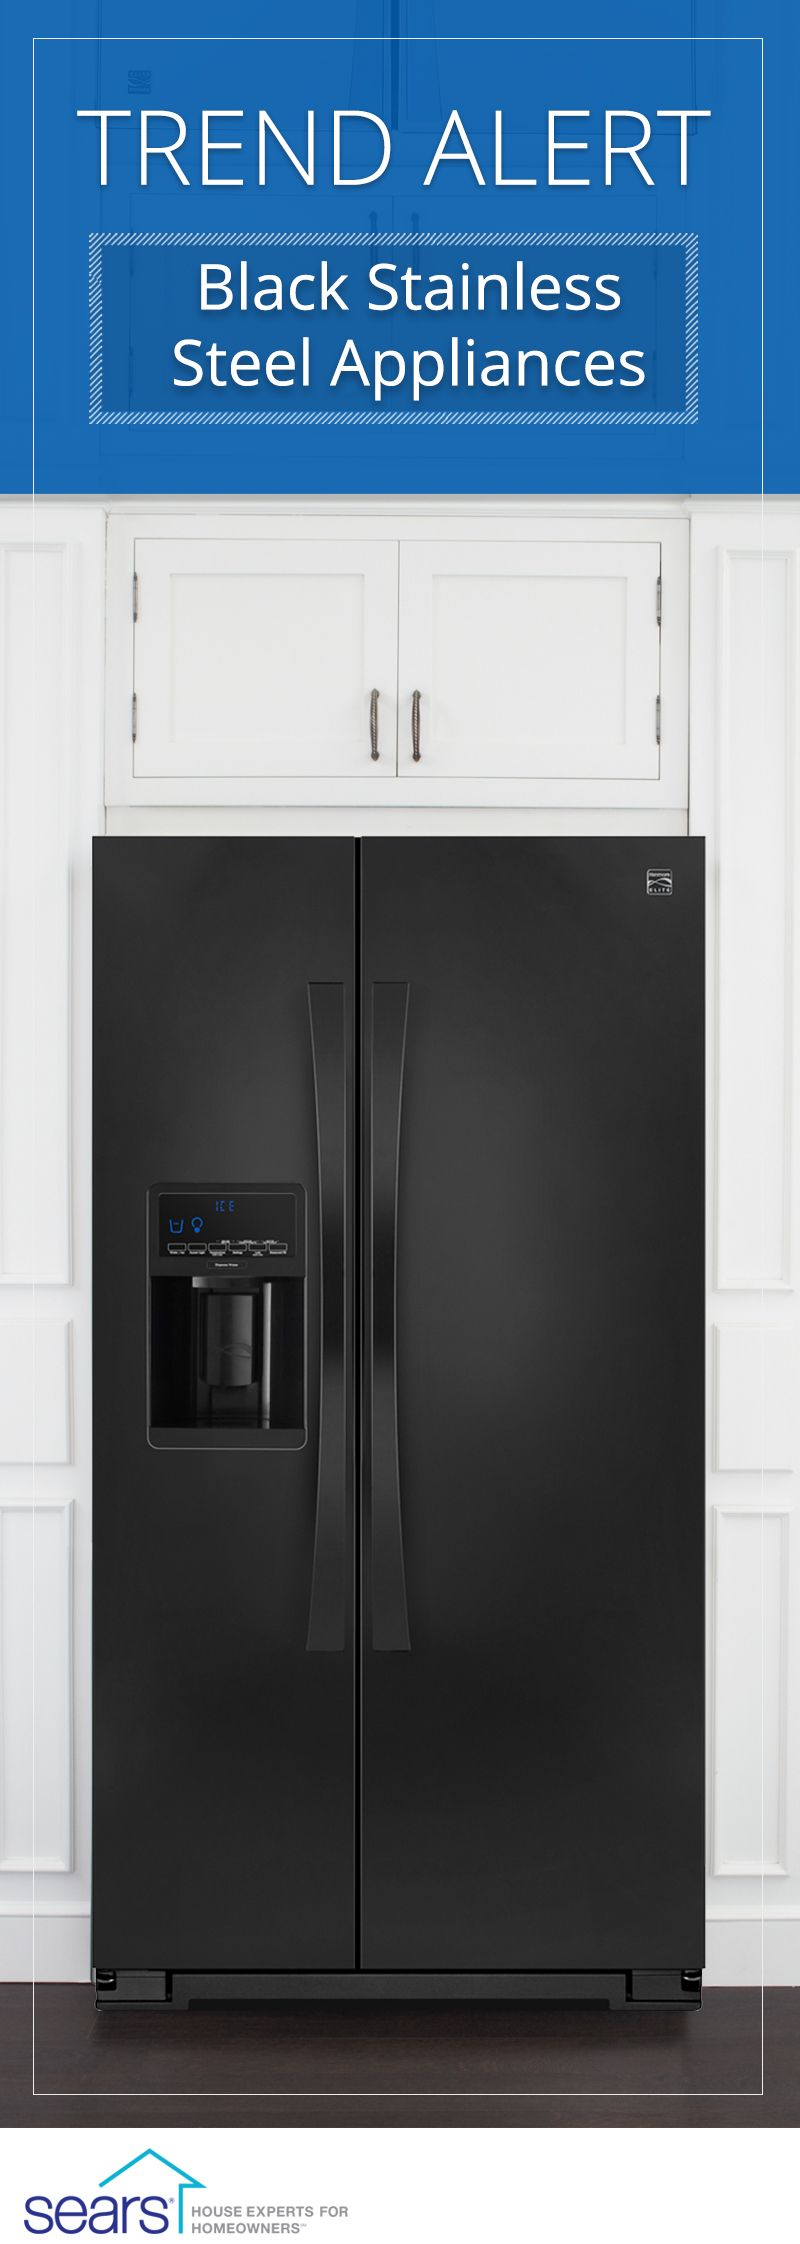 Give your kitchen a new sleek look with the latest appliance trend ...